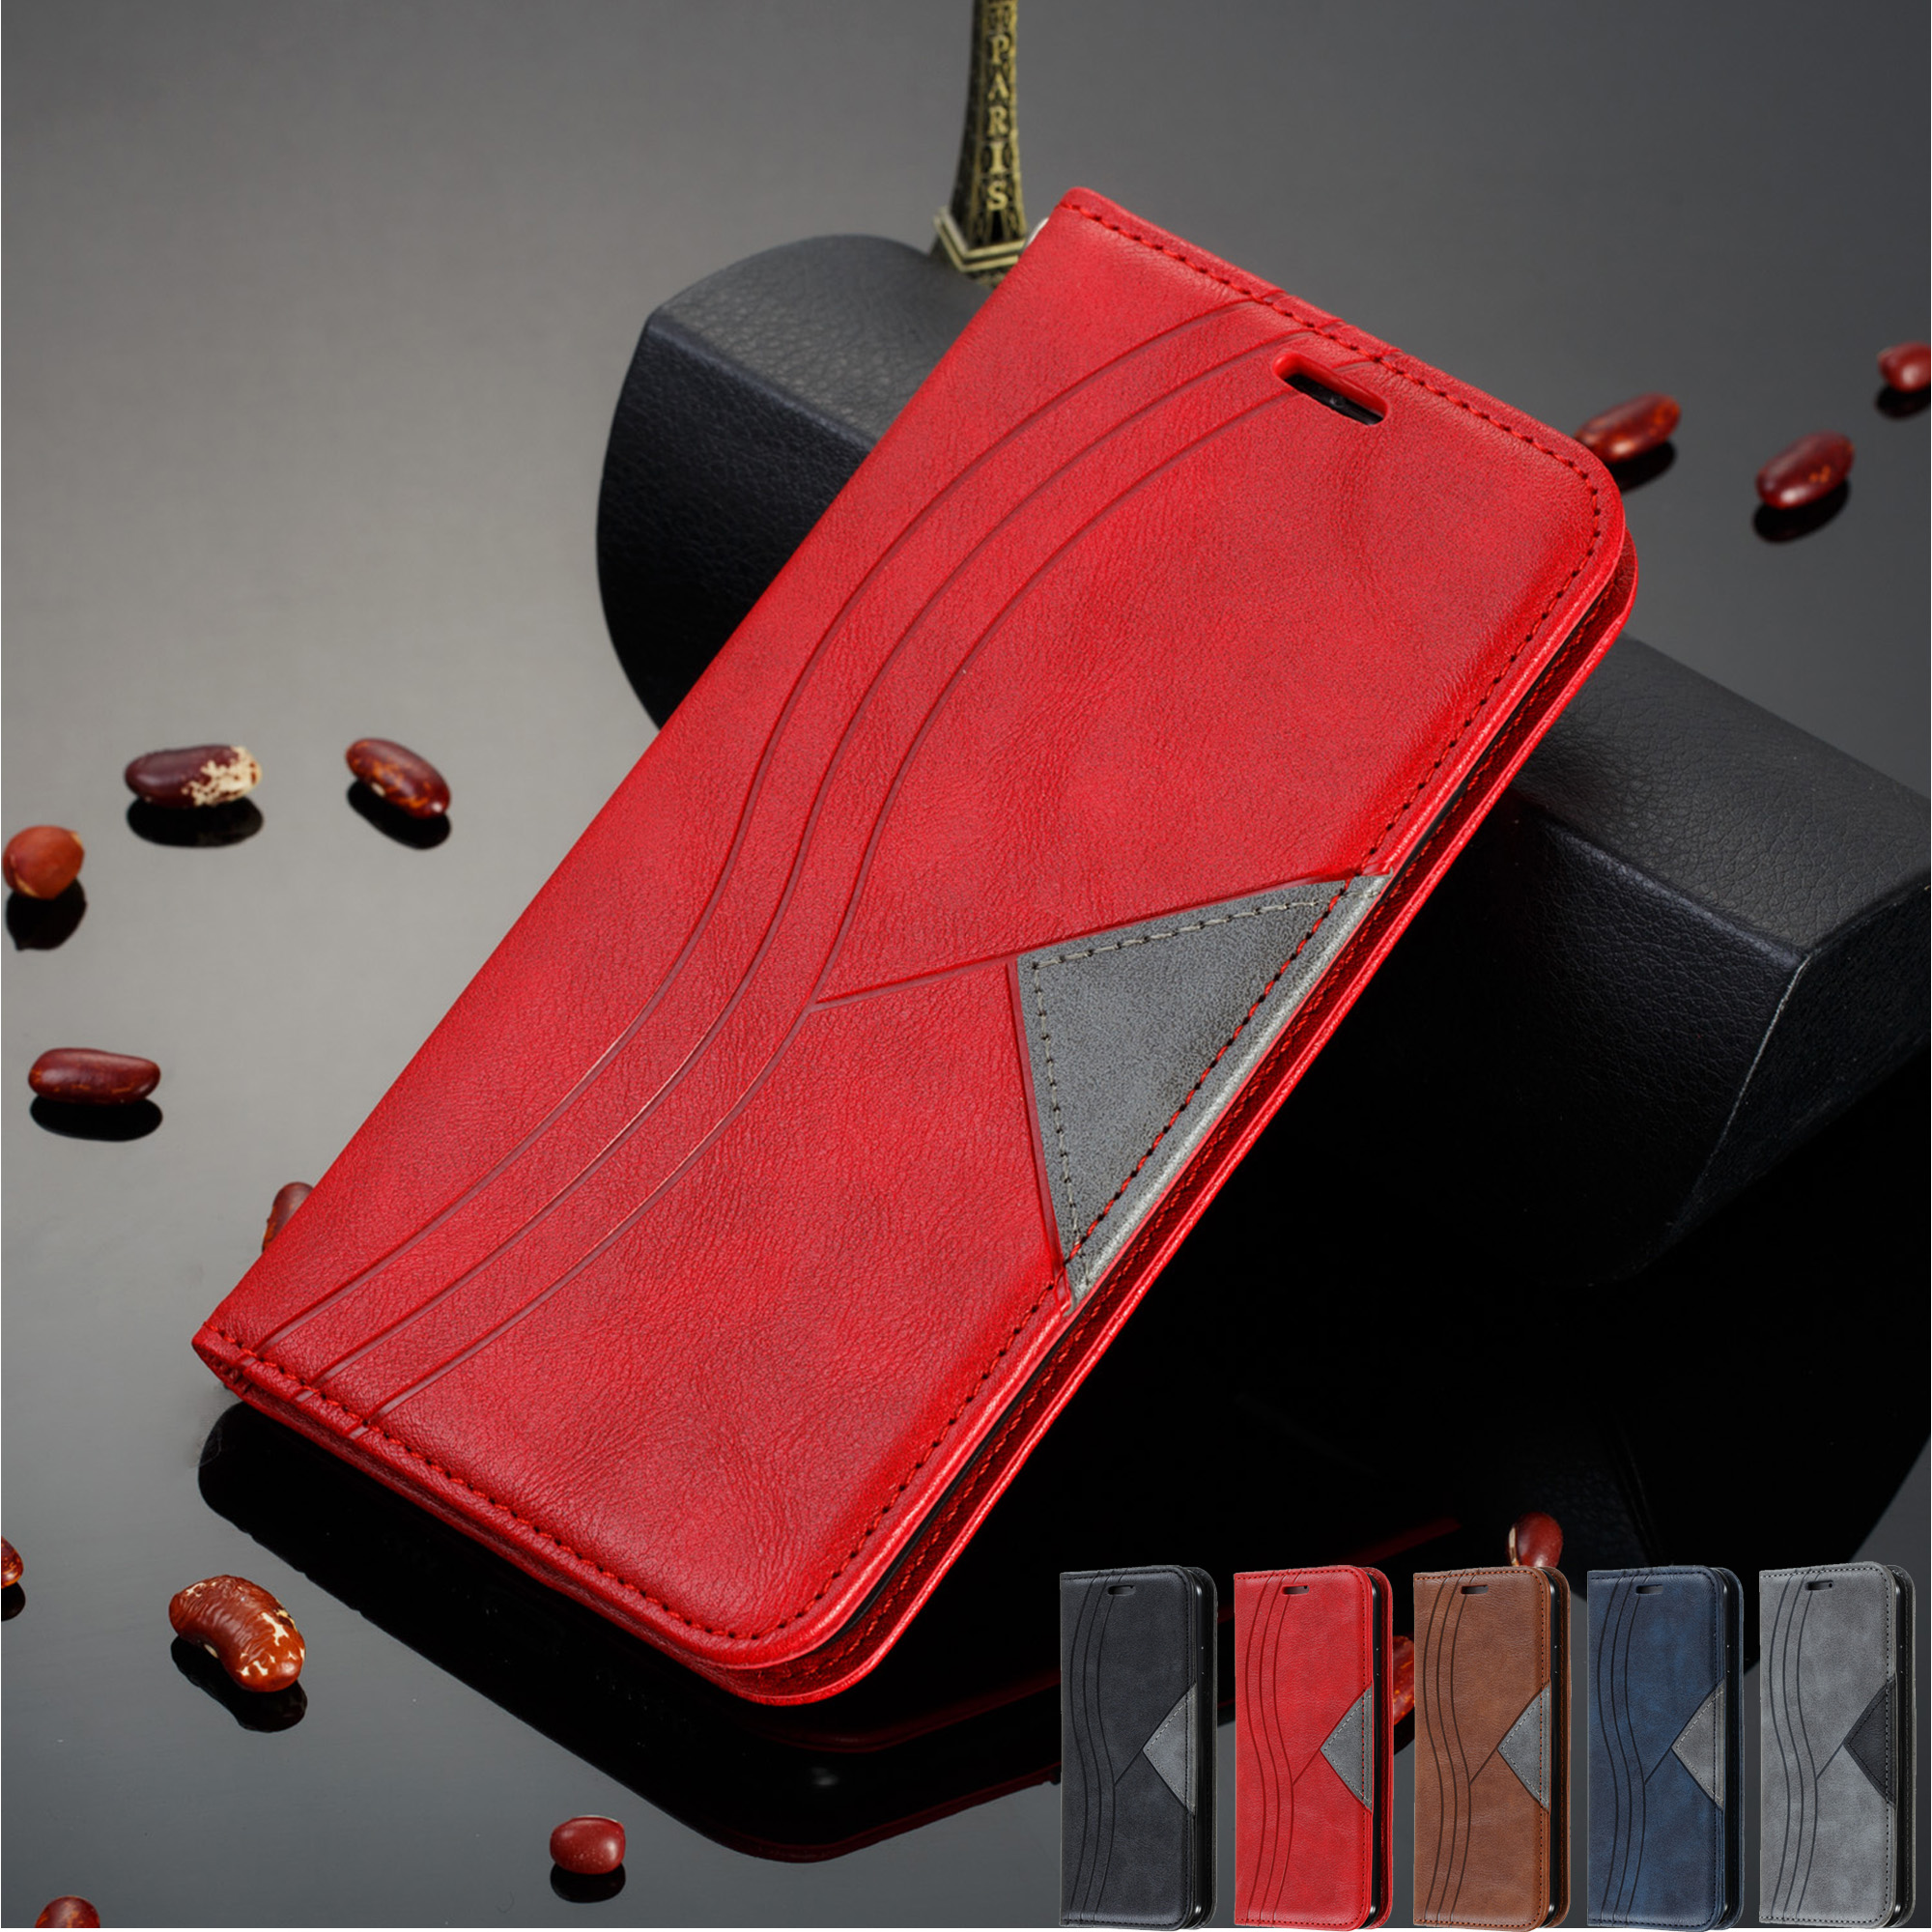 <font><b>huawei</b></font> y5 2019 AMN-LX1 LX2 LX3 LX9 <font><b>case</b></font> on sFor <font><b>Huawei</b></font> Y5 <font><b>Y</b></font> <font><b>5</b></font> Lite Prime <font><b>2018</b></font> y52018 Honor 8S KSE-LX9 <font><b>cover</b></font> <font><b>flip</b></font> leather coque image